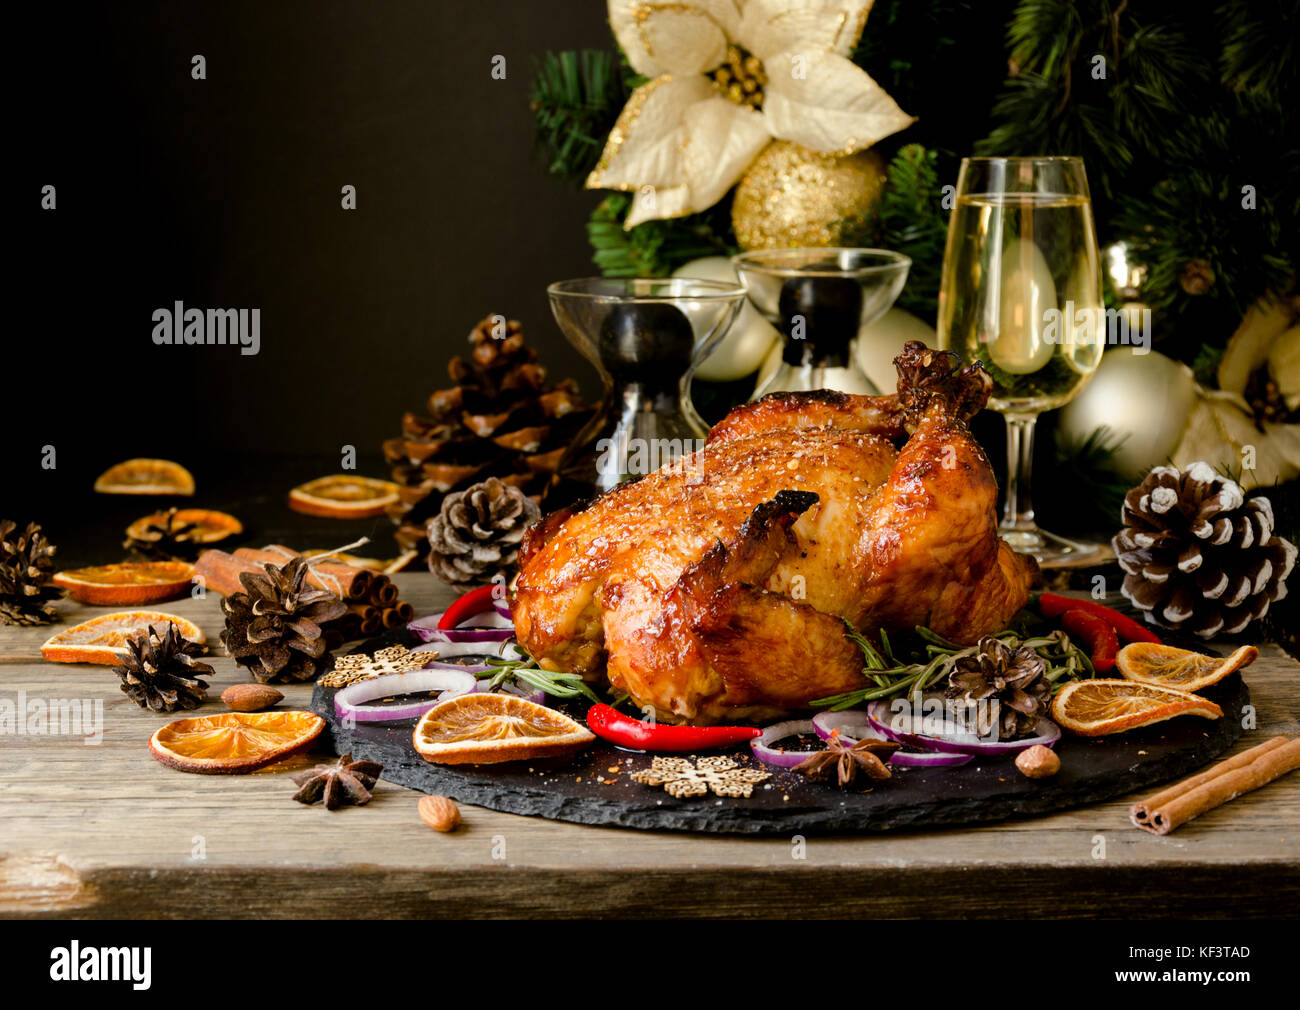 Roast chicken or turkey for Christmas and New Year with mulled wine and Christmas decorations, space for text, selective - Stock Image